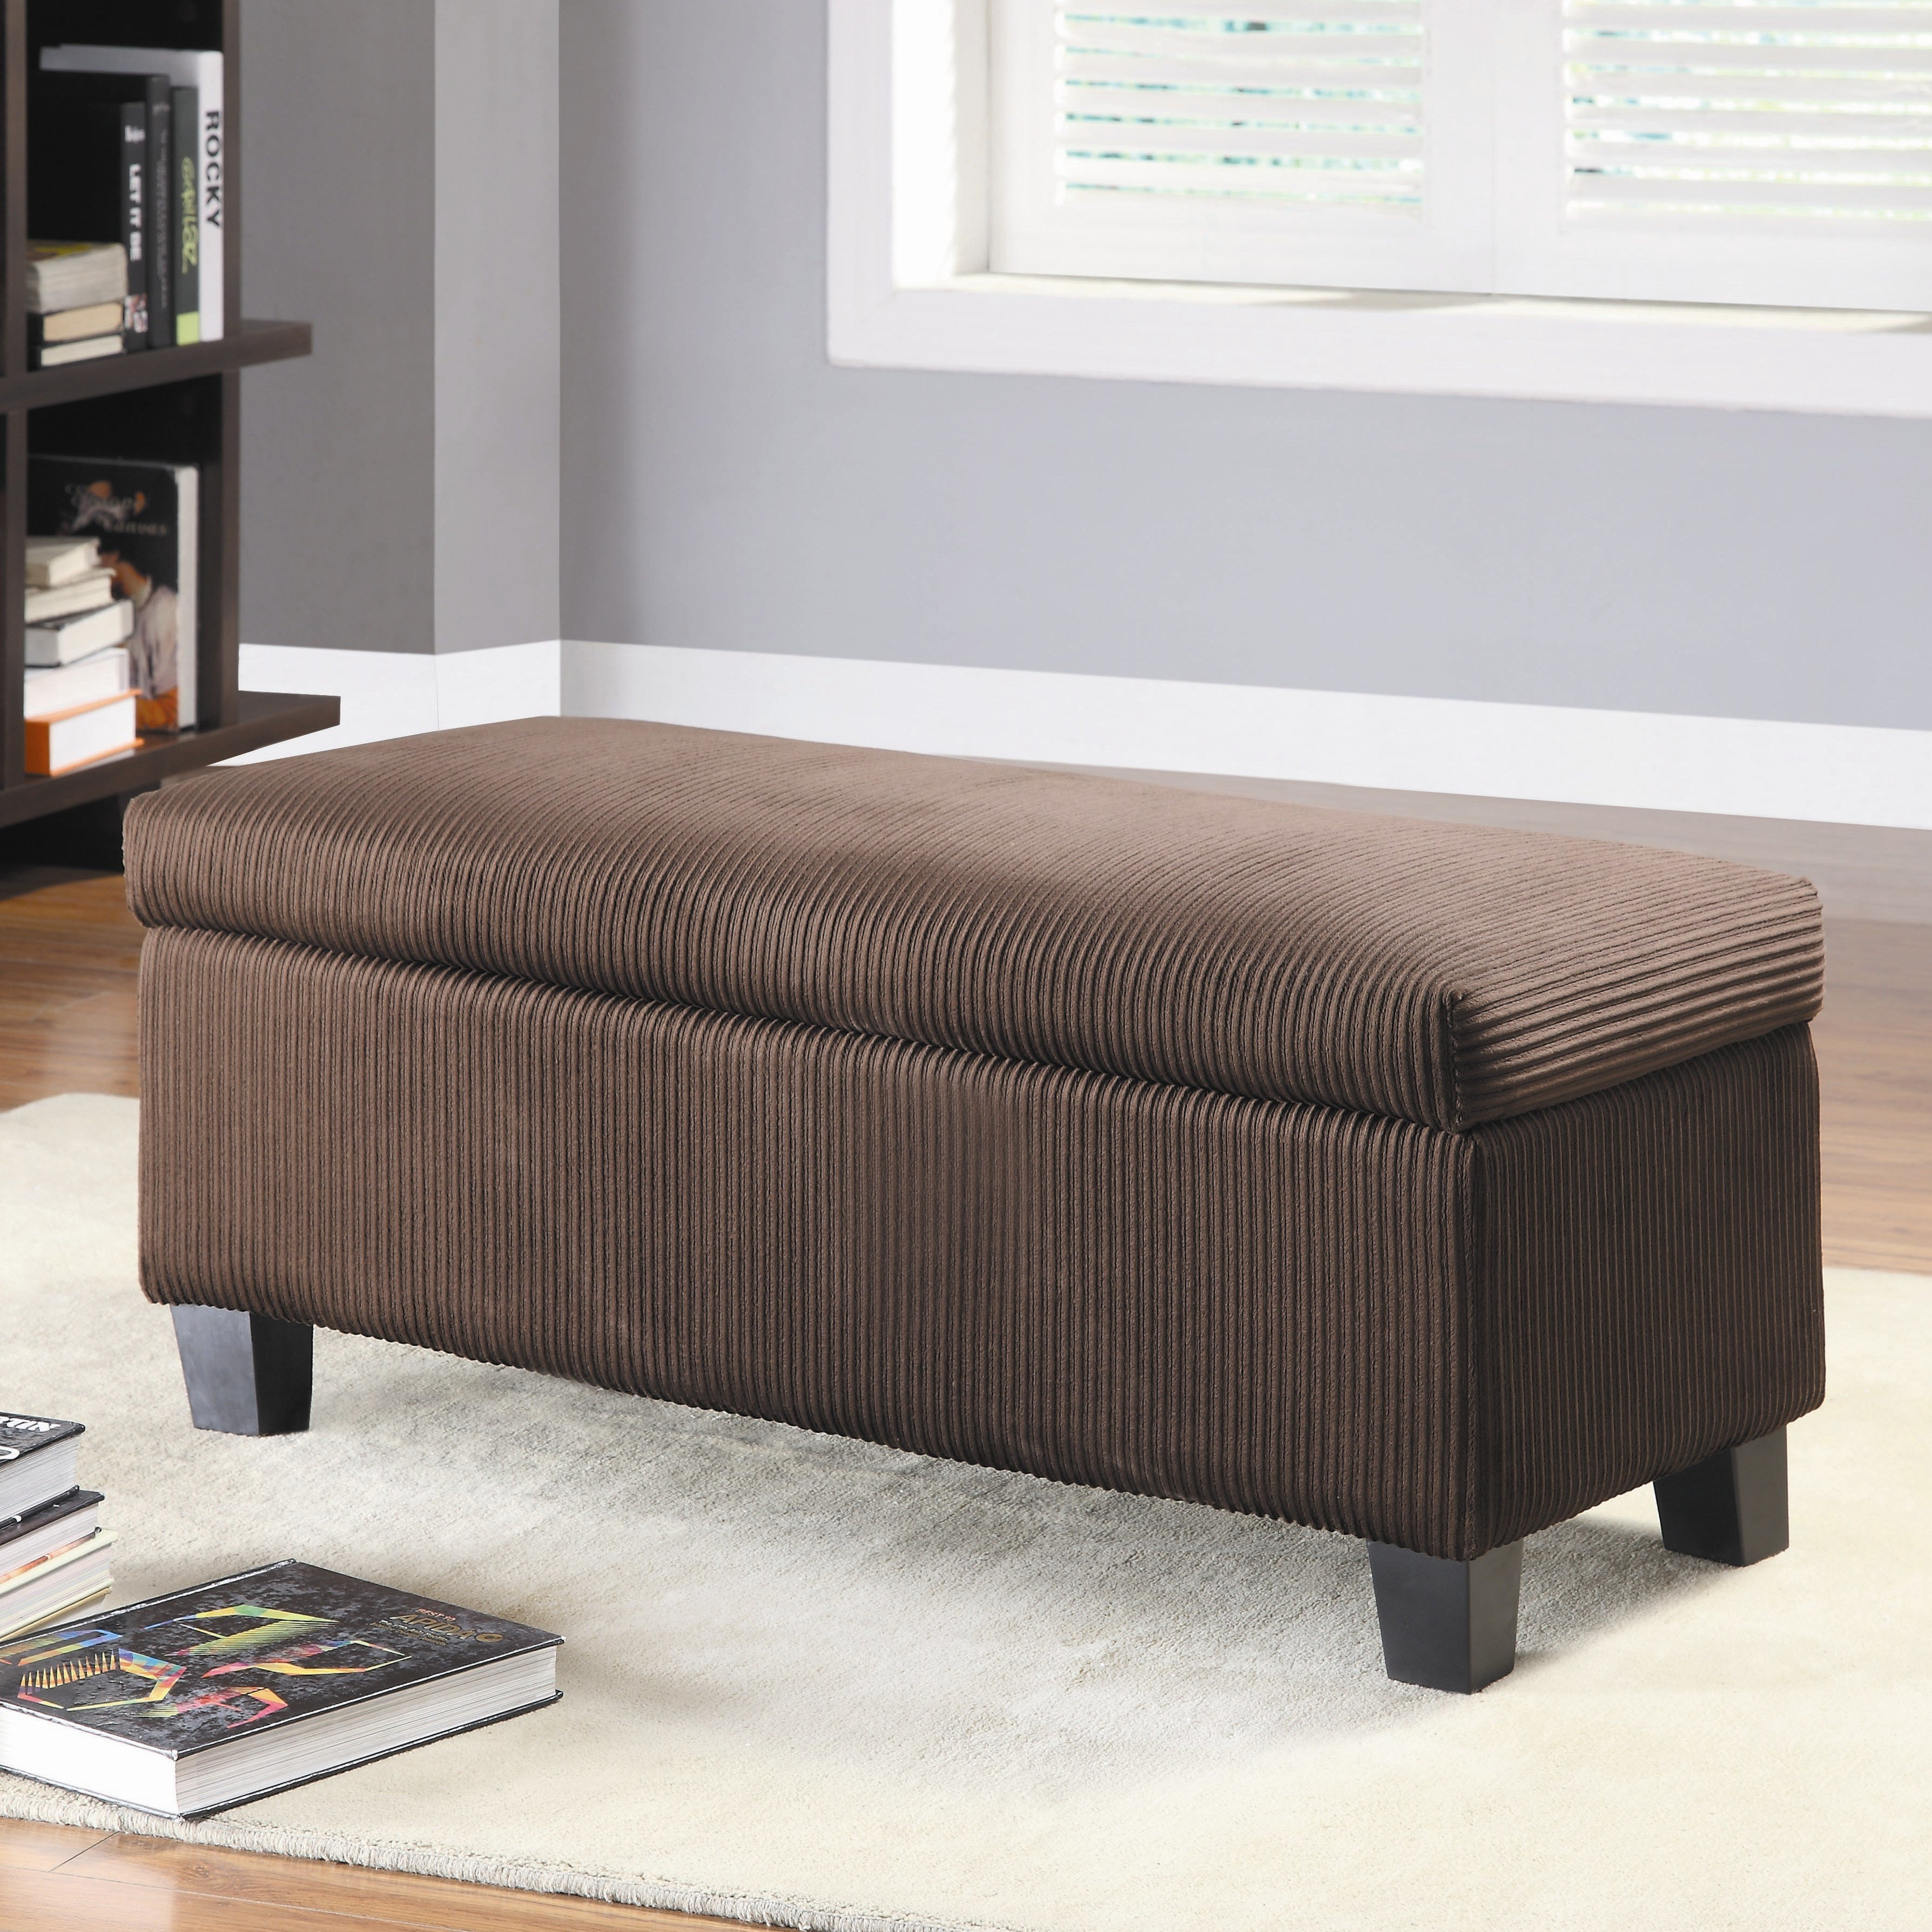 Best Clair New Fabric Bedroom Storage Ottoman Wayfair With Pictures